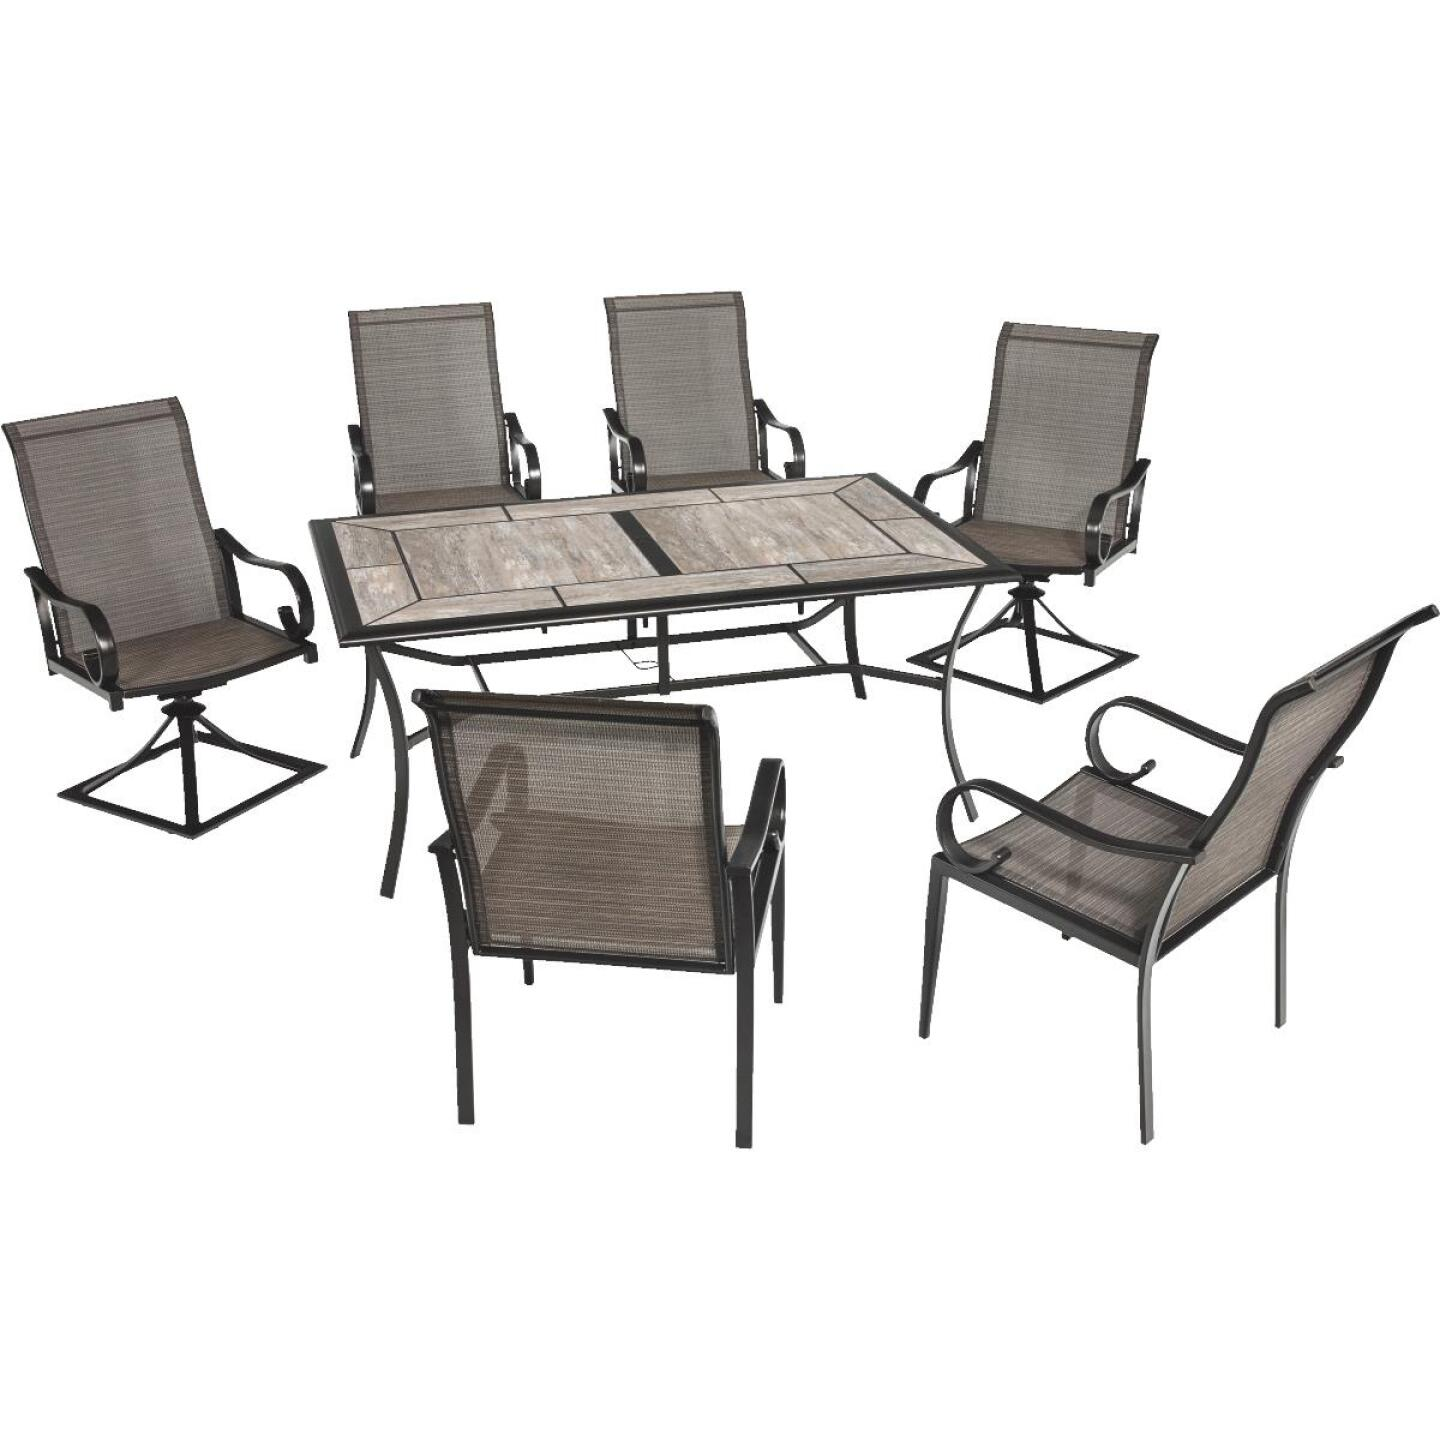 Outdoor Expressions Berkshire 7-Piece Dining Set Image 152